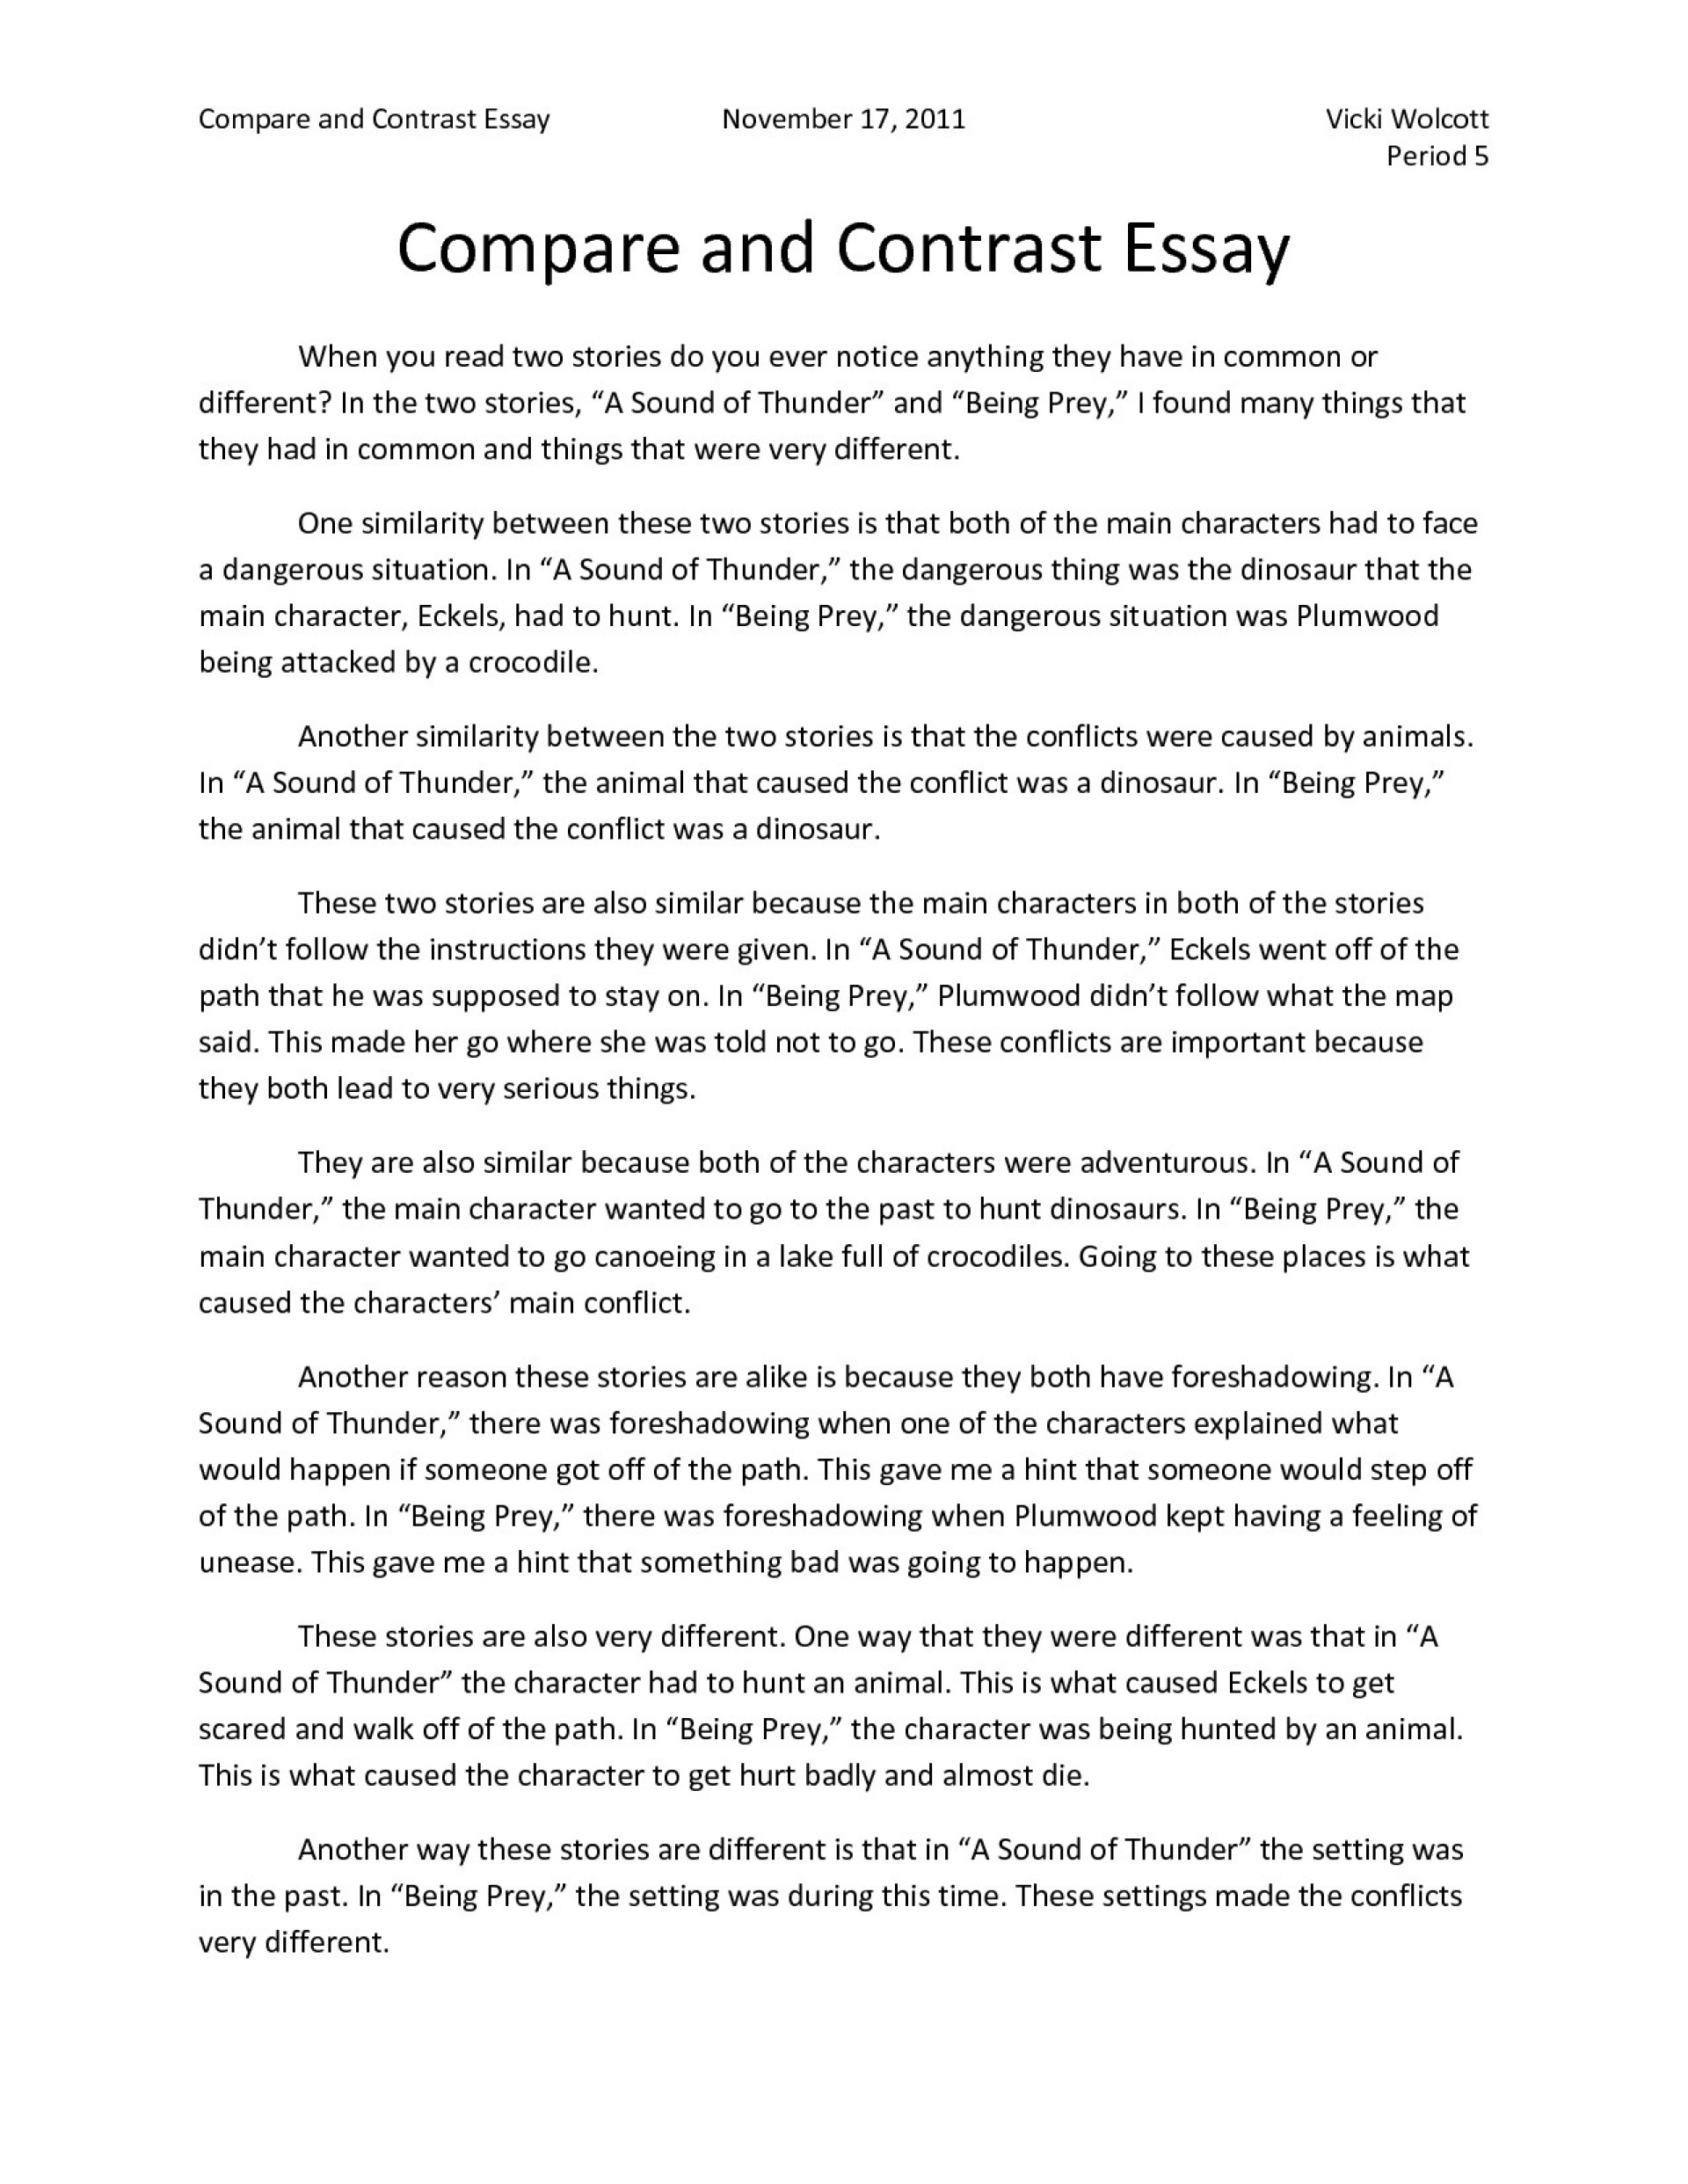 014 Comparingnd Contrasting Essay Example Satire Examples Of Comparison Contrast Essays Com How To Write Fascinating A On Obesity Outline Essay-example 1920